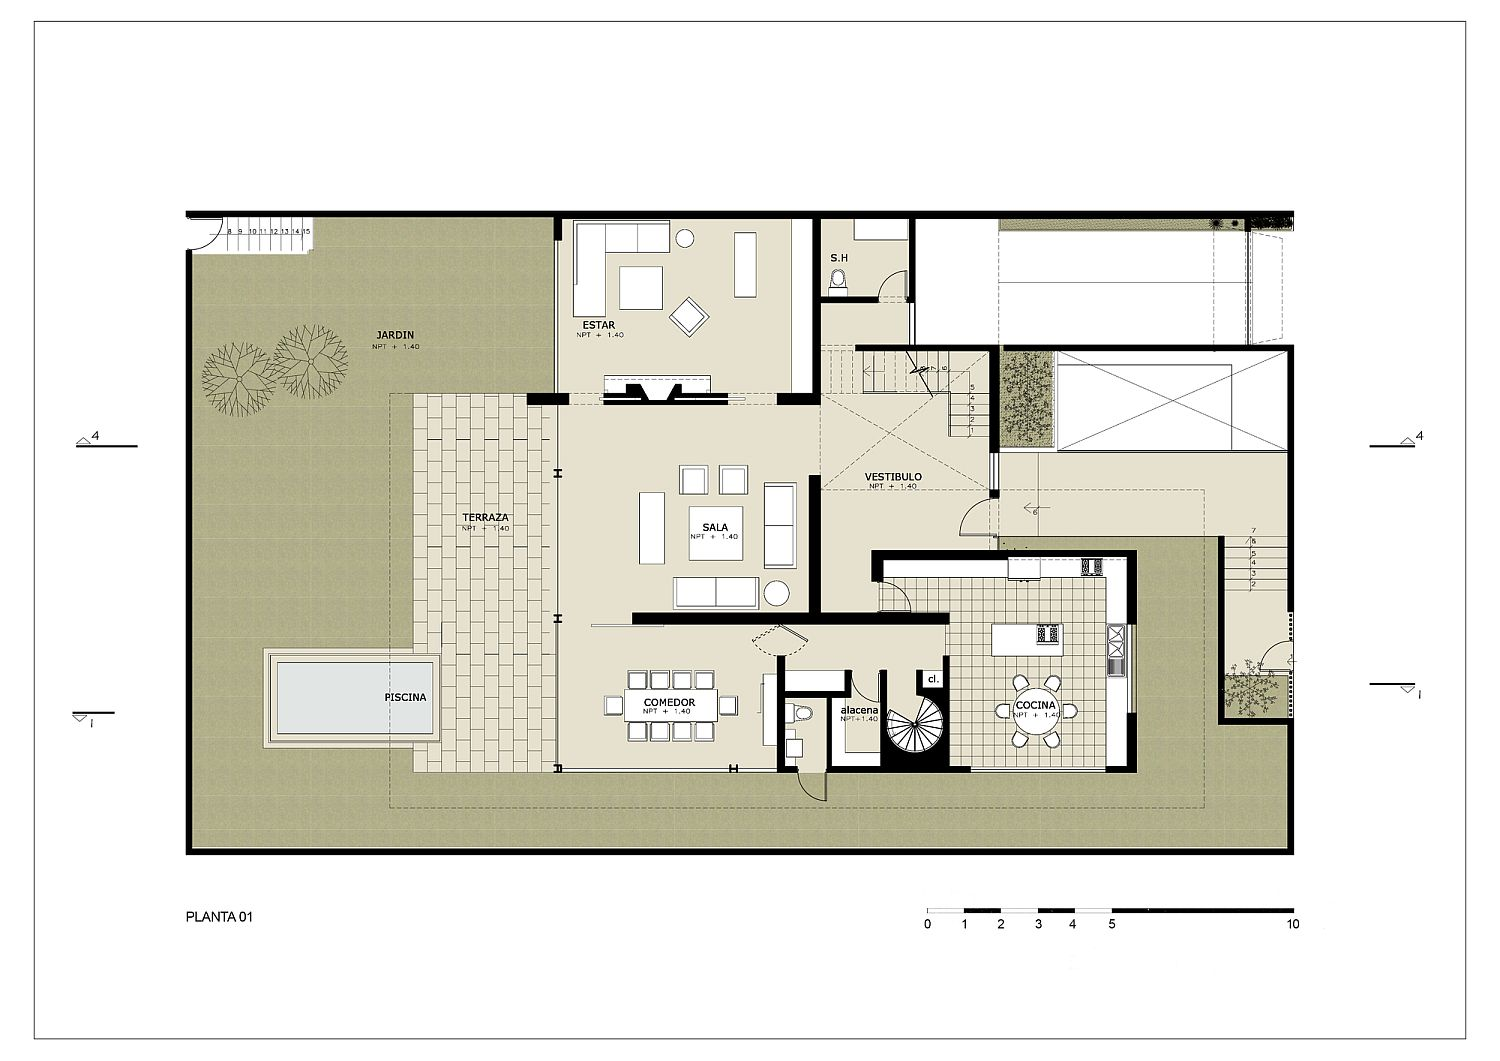 First level floor plan of contemporary home in Lima with rooftop garden and living areas